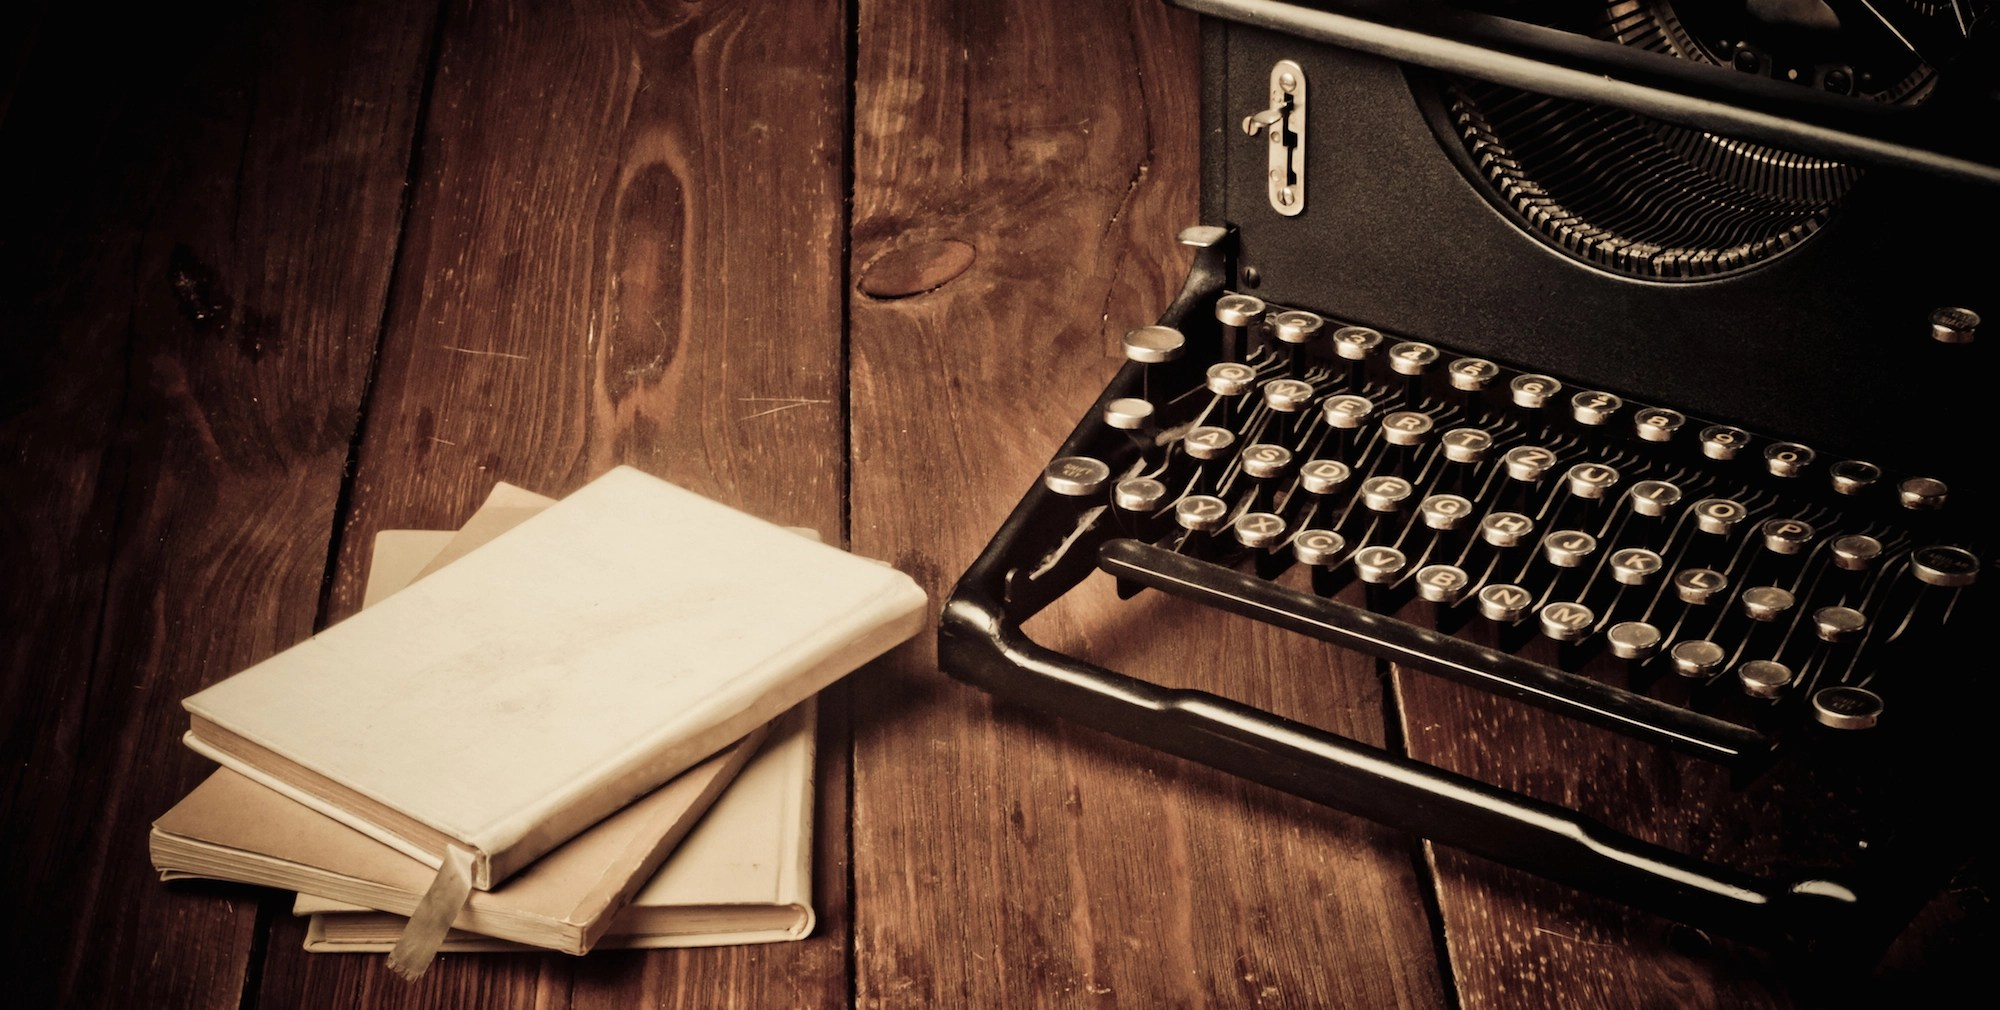 The Common Elements of Good Storytelling